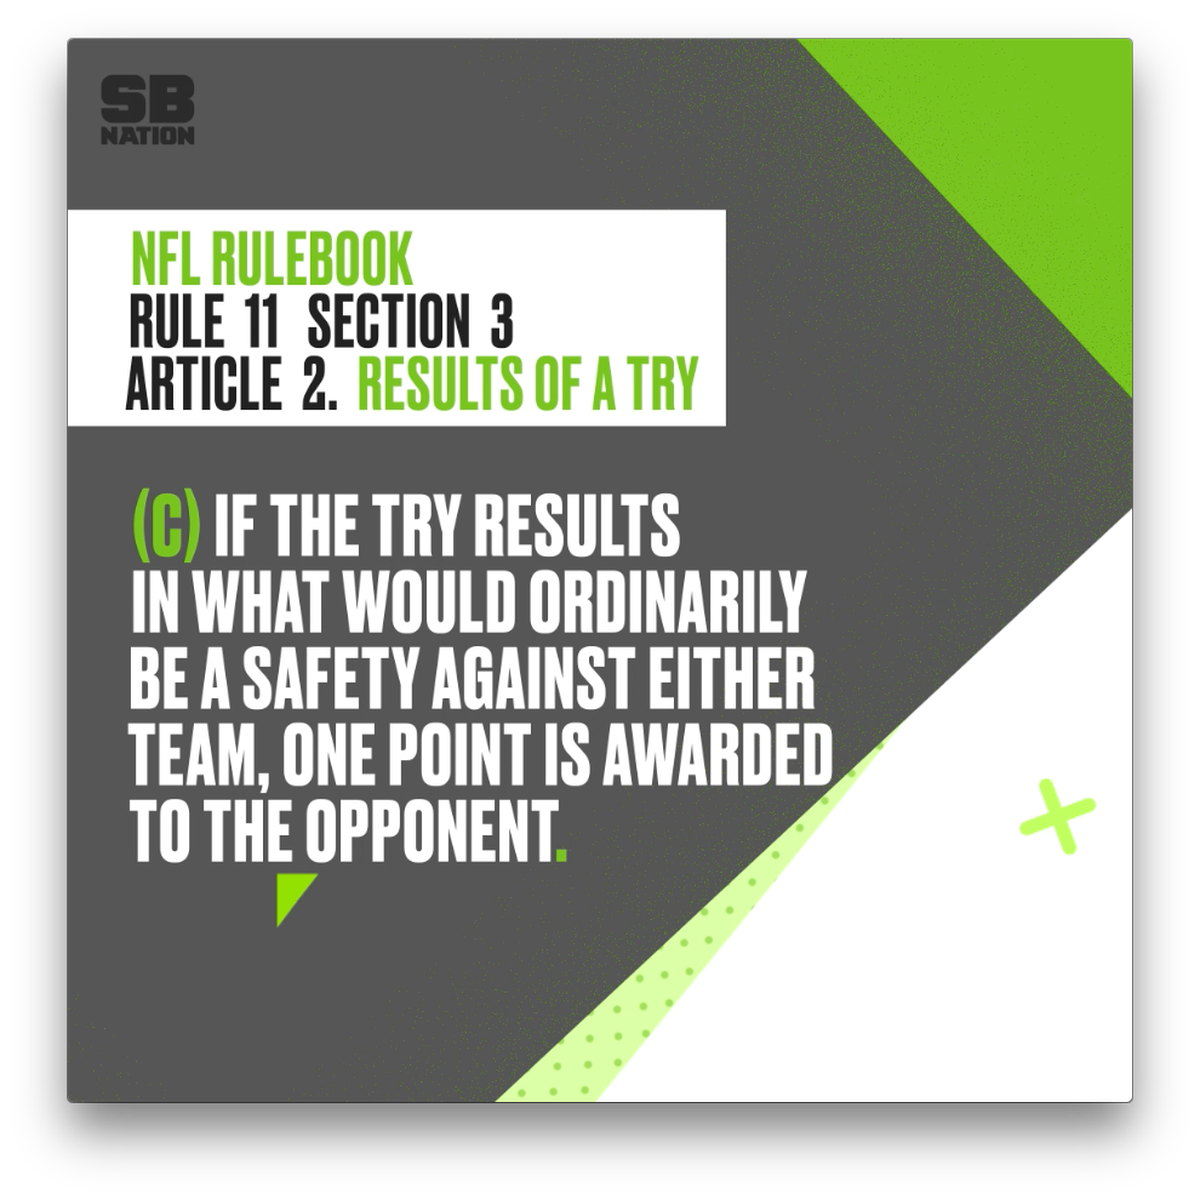 Free clipart rule book jpg download The one-point safety is the NFL's rarest scoring play - SBNation.com jpg download